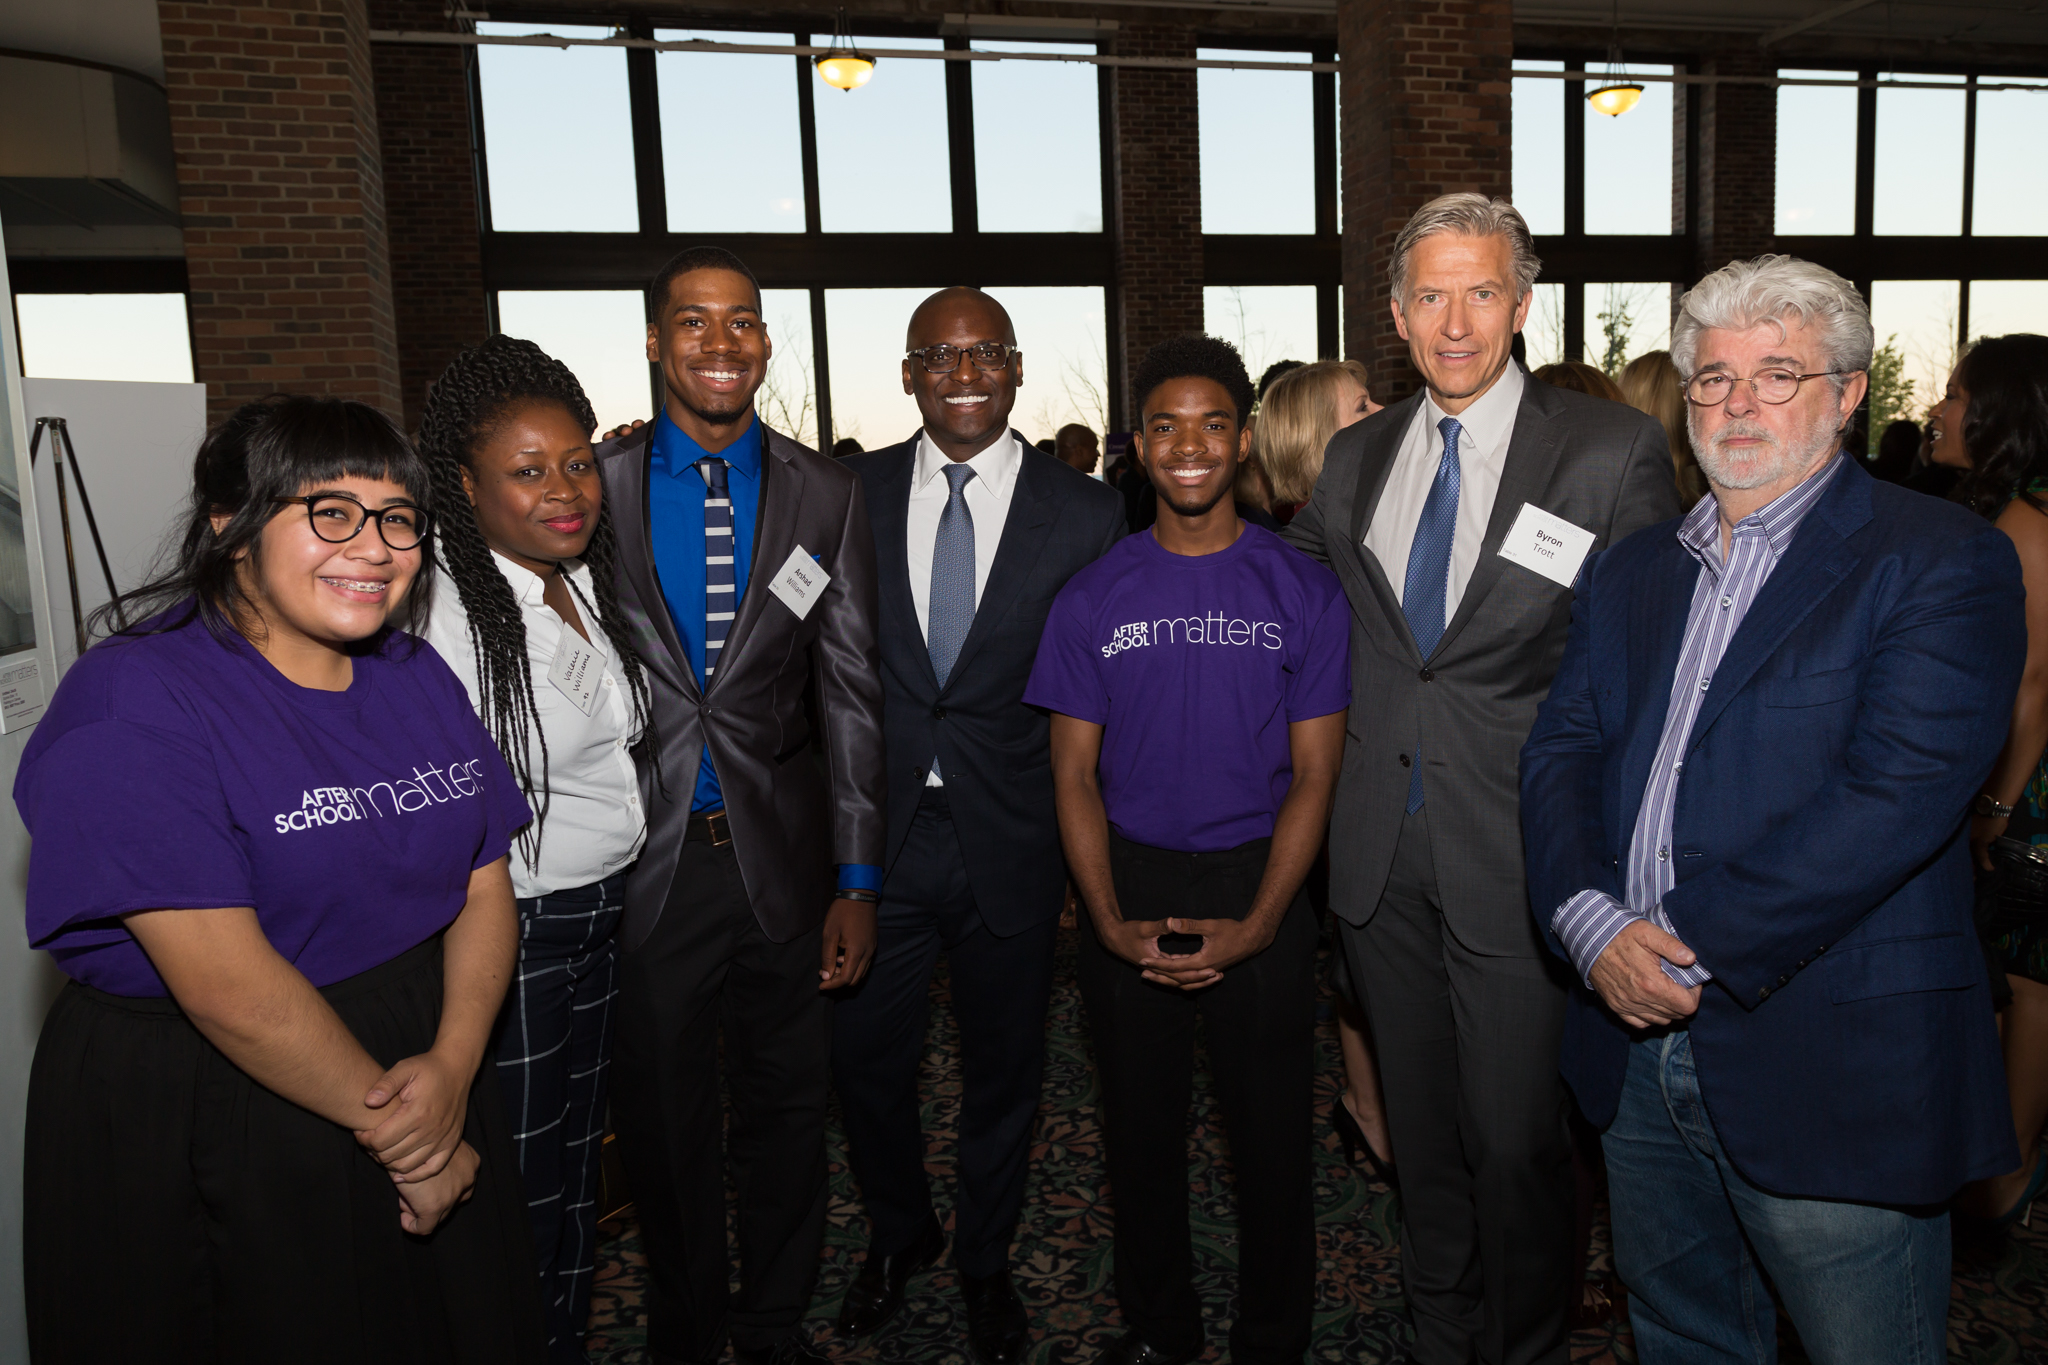 <p>After School Matters teens Alejandra and Alex alongside guests (from left) Valerie and alumnus Arshad Williams, Board Vice Chair Robbie Robinson, and Gala Chairs Byron Trott and George Lucas at the reception of the After School Matters Annual Gala on September 21, 2015 at Chicago's Navy Pier. Photo credit: Juan Martinez</p>